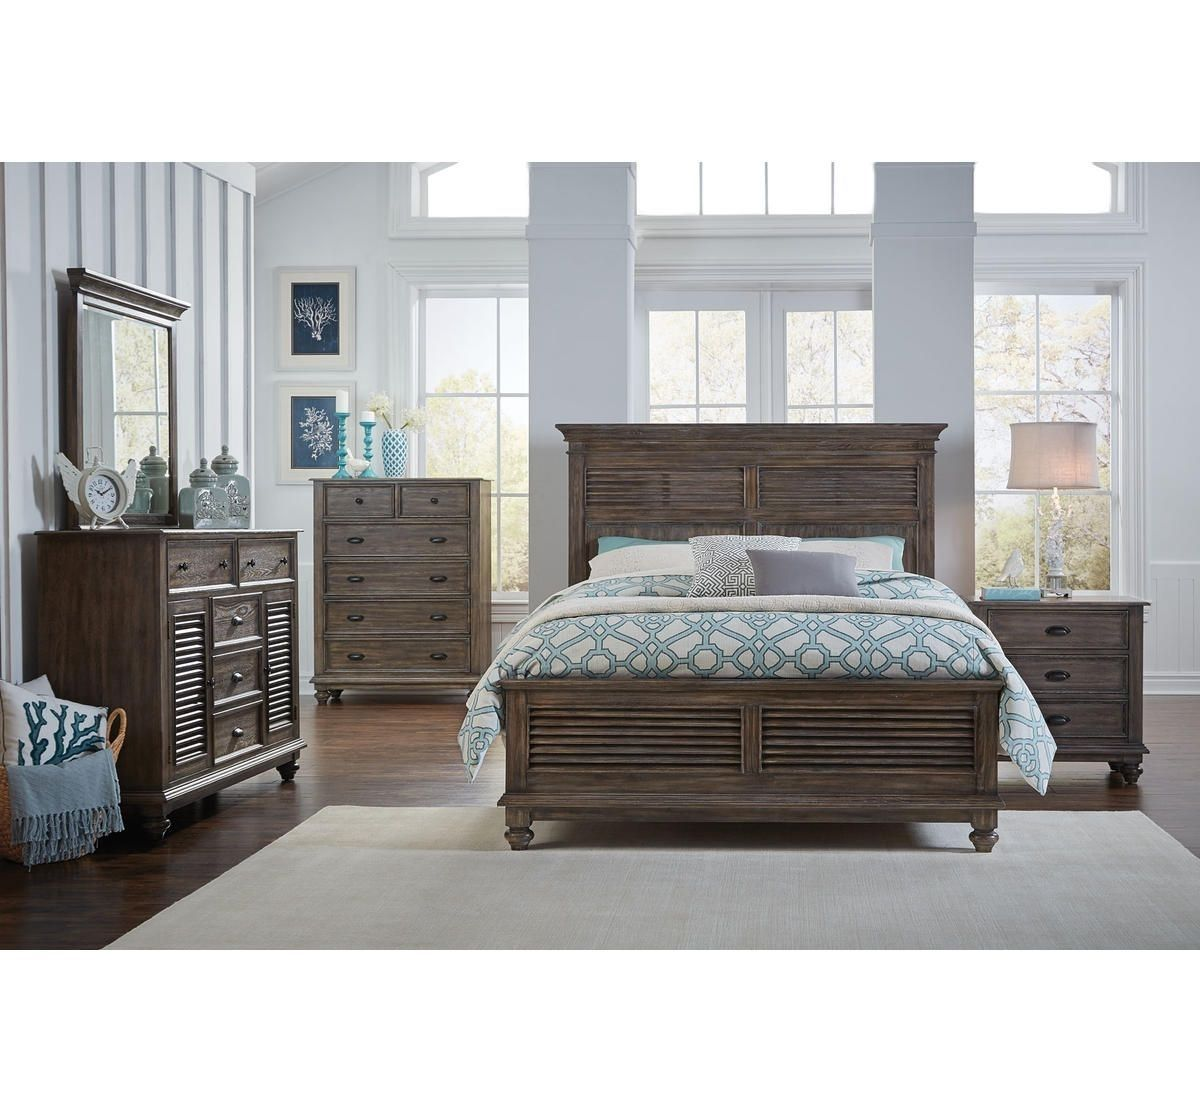 Picture Of Vista Pointe 5 Pc King Bedroom Group Bedroom Sets